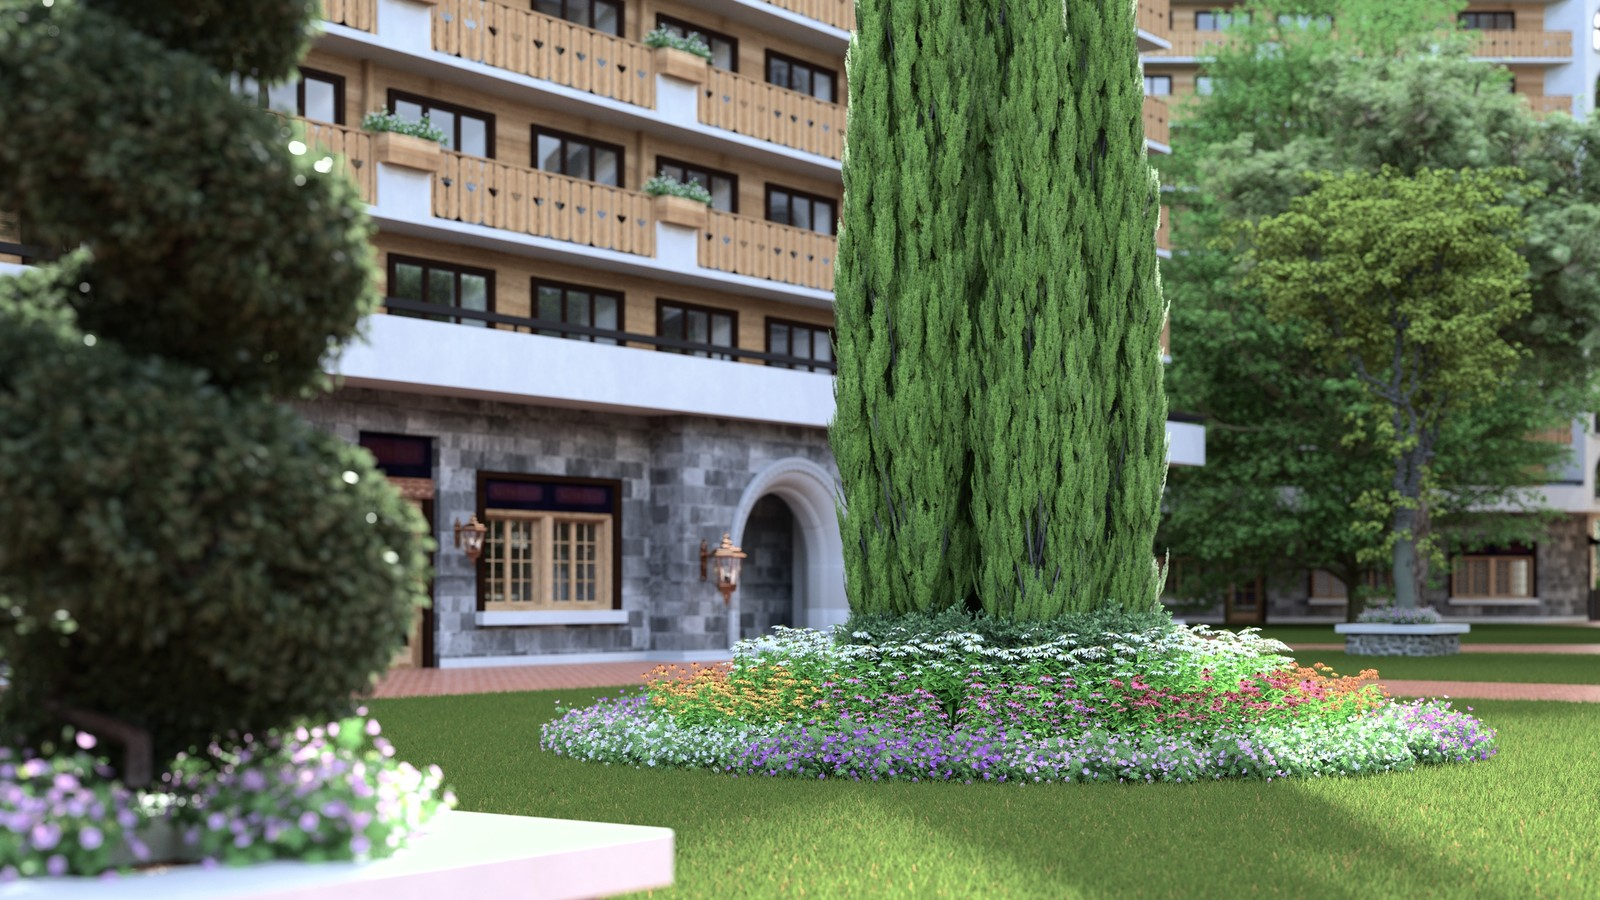 SketchUp 2018 + Thea Render V1.5 Ode to Vimage Visualisation 04 Eco Cycle Alpine hotel v2018-Scene 91 PMC 1024 s-px 2840x2160 4h15 HDR241 FP2900ZG.crf A  HDR 241 by HDRI-SKIES: http://hdri-skies.com/shop/hdri-sky-241/